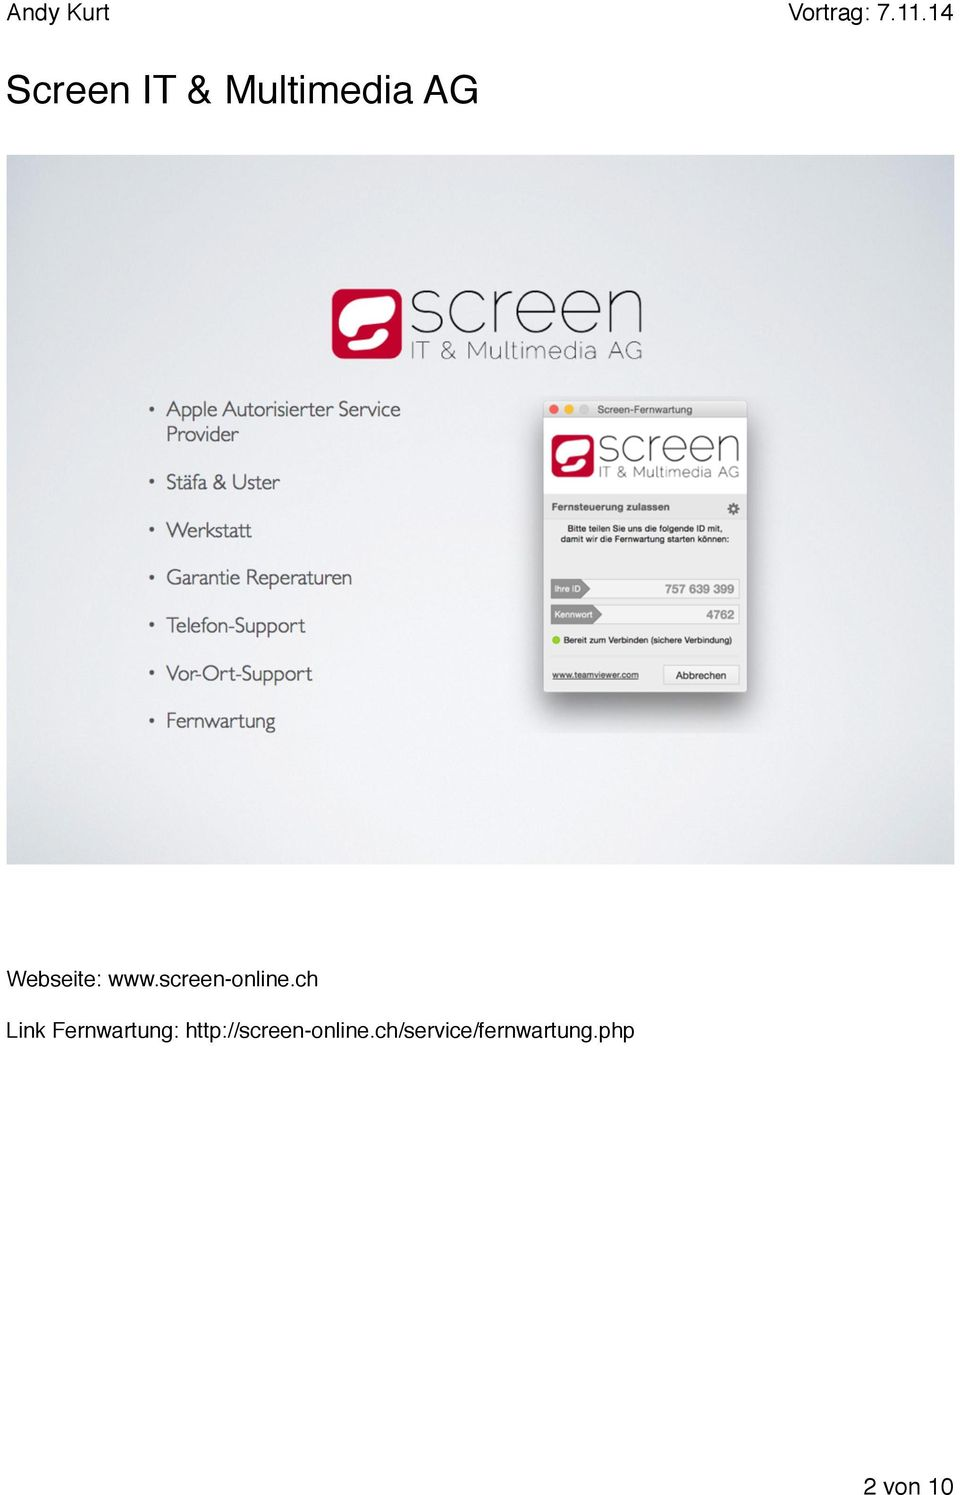 www.screen-online.